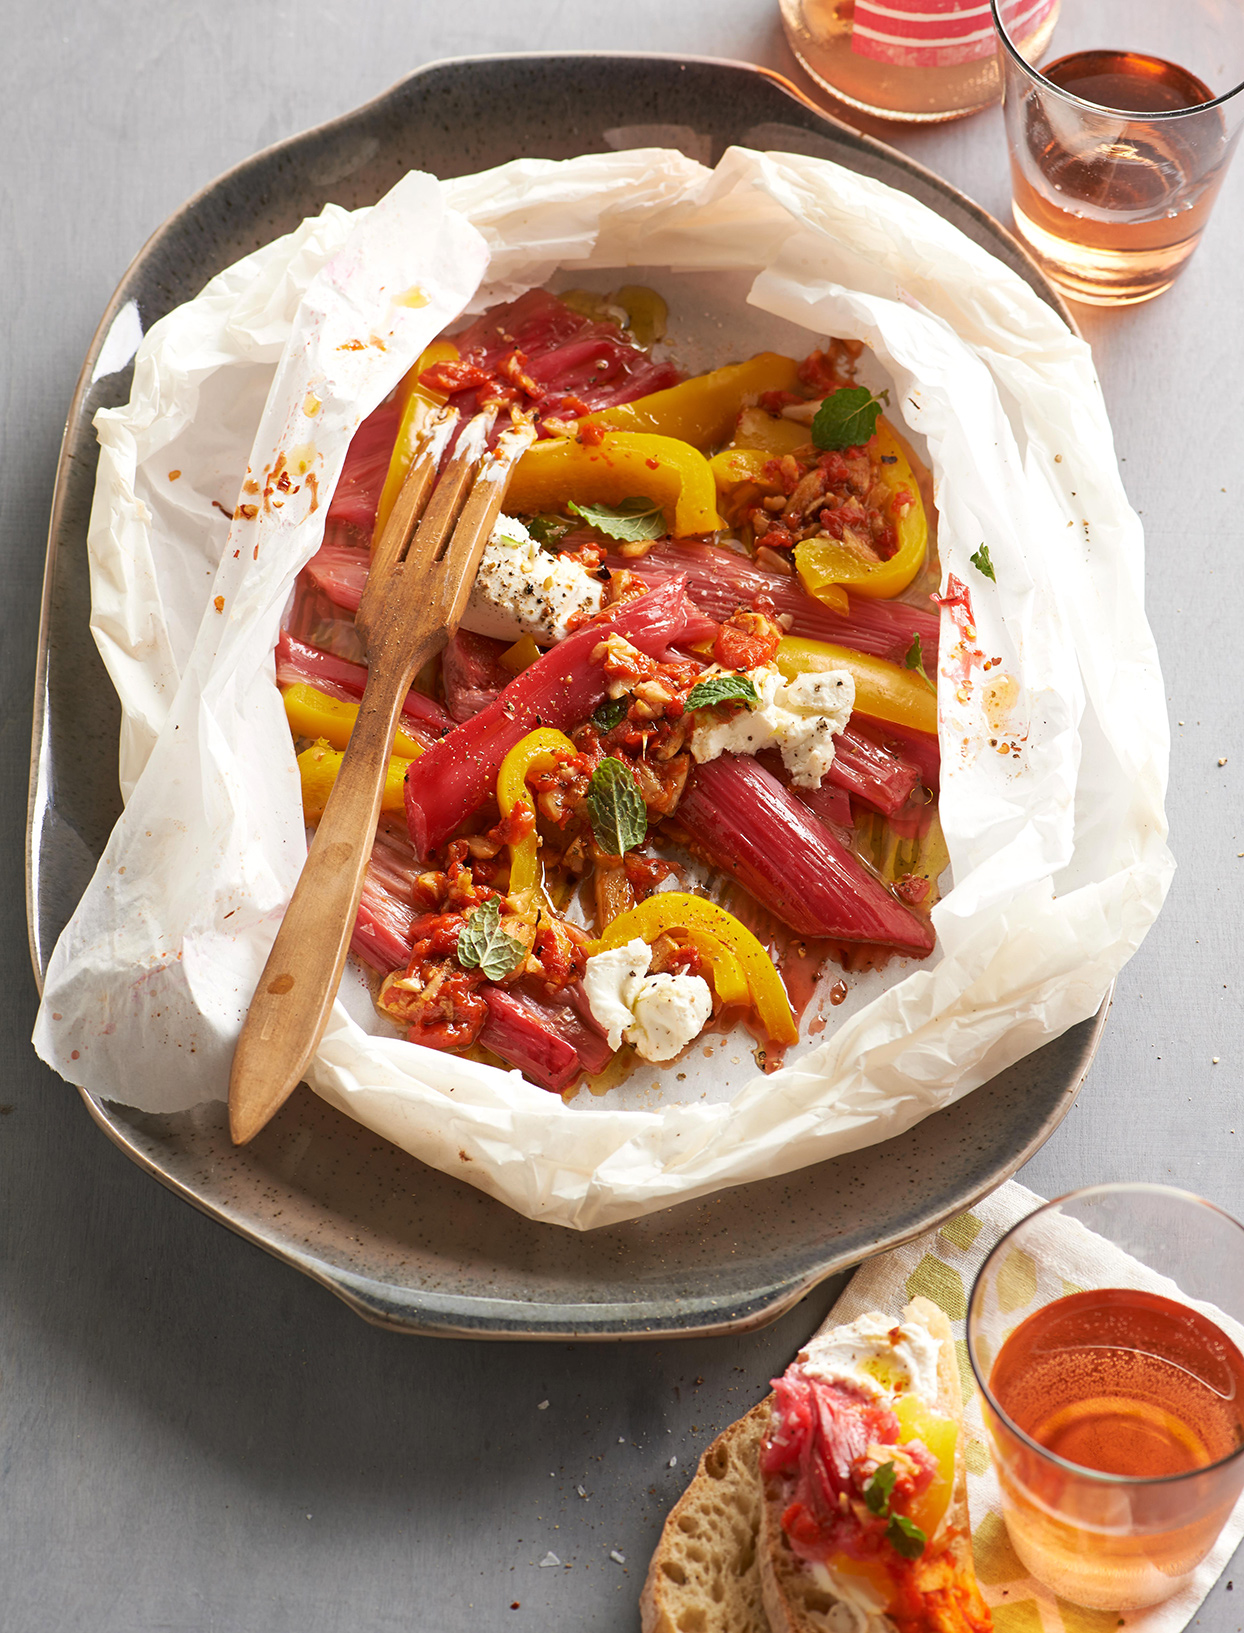 Melty Rhubarb, Peppers, and Goat Cheese